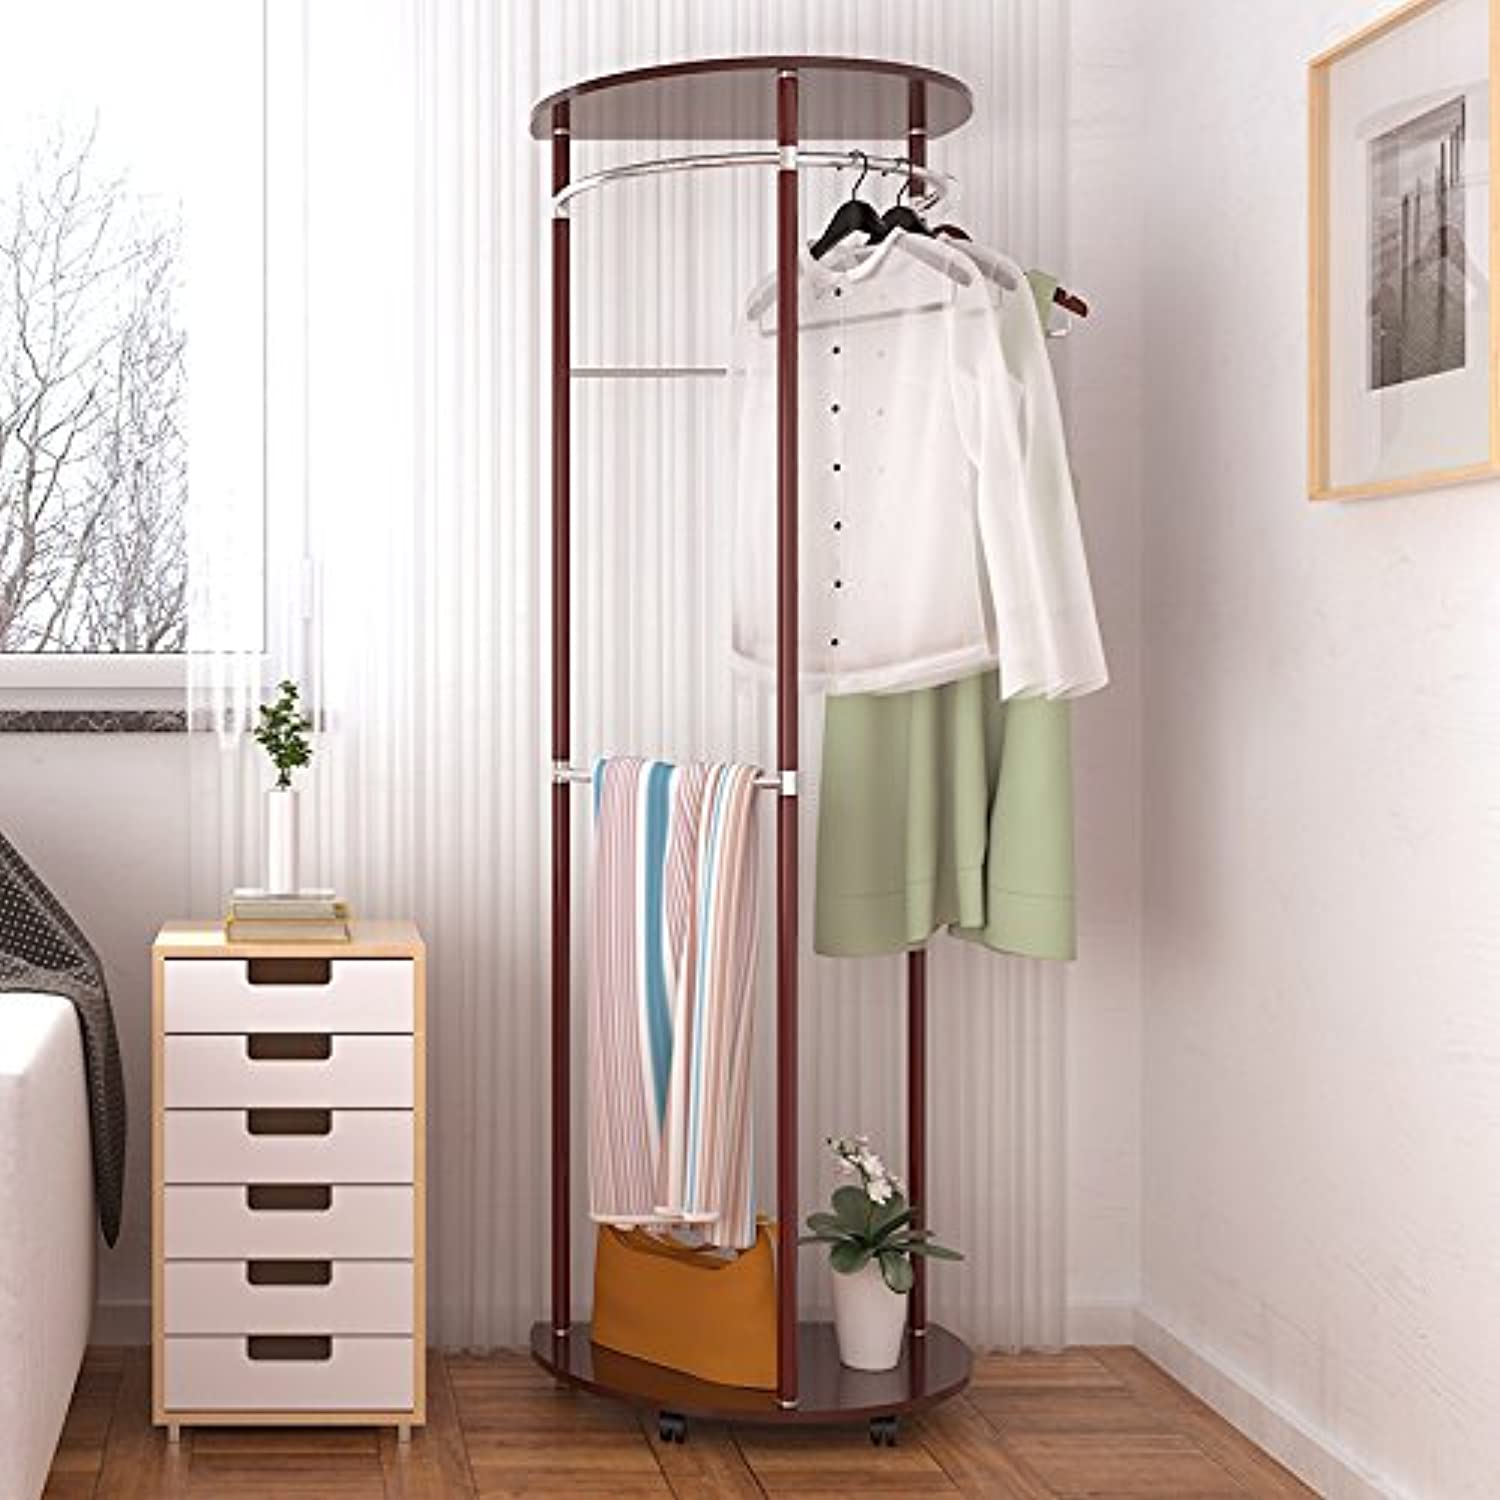 Simple and Modern Hangers Standing Coat Rack in The Foyer Floor Bedroom Creative Fashion Clothes Shelf Racks,Red